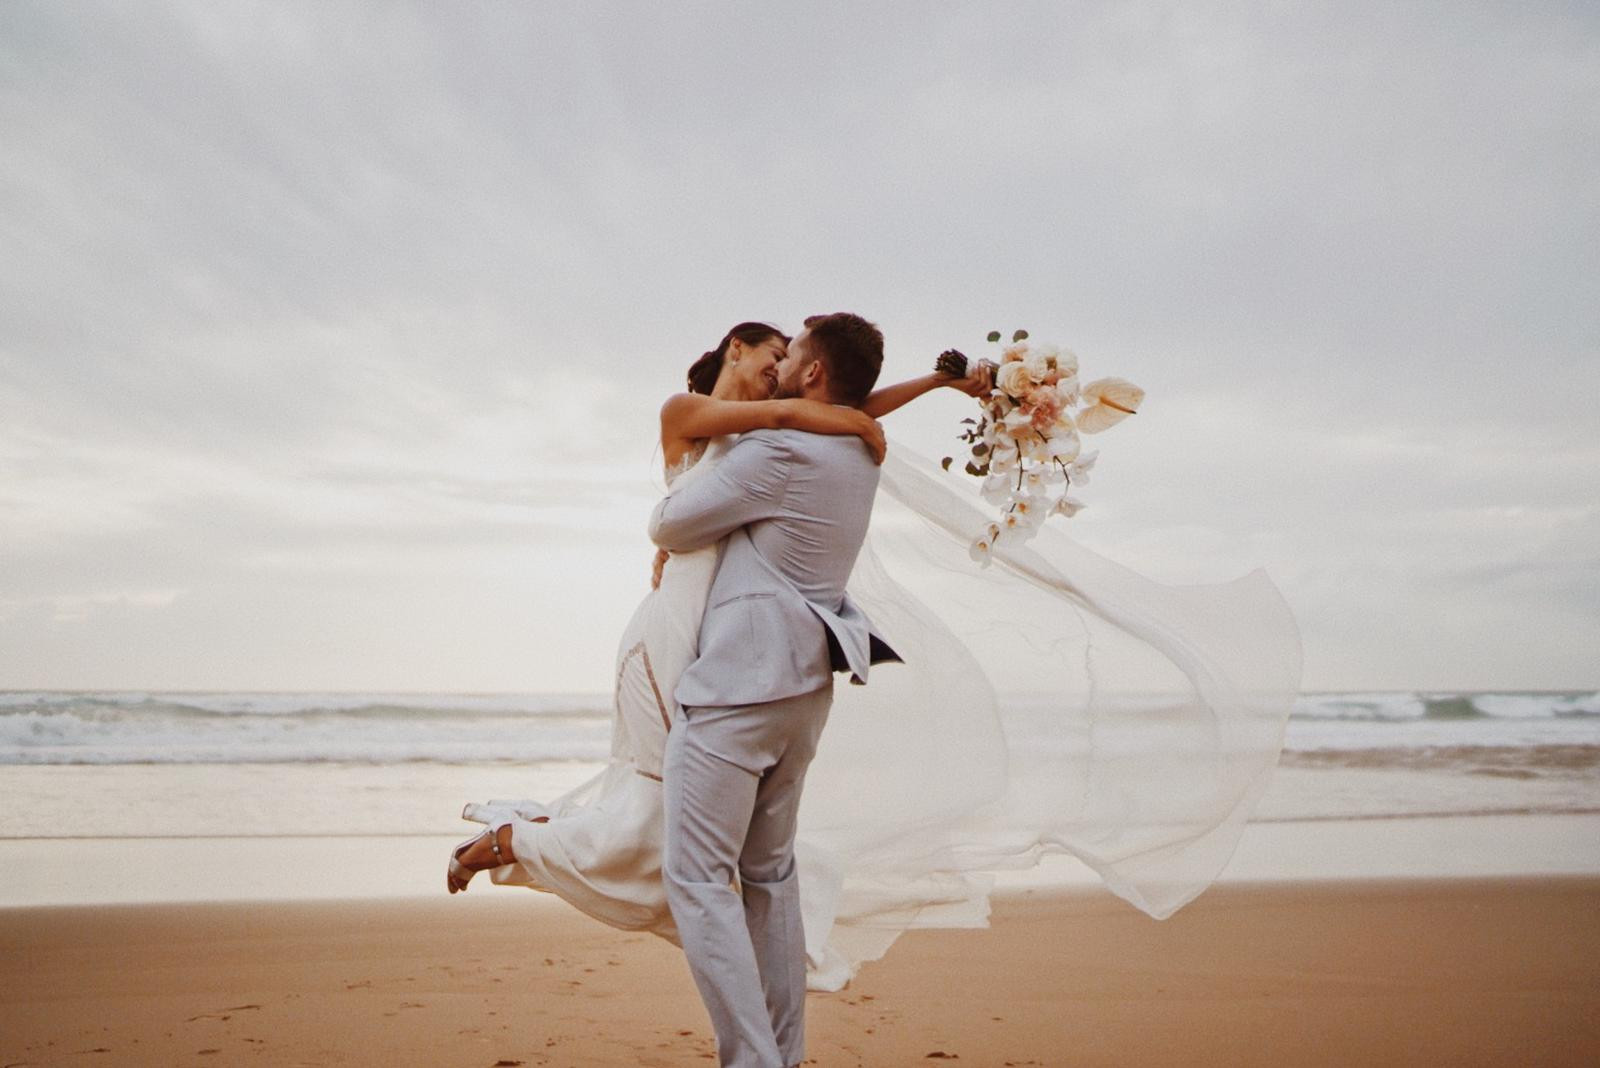 Groom lifts up bride on the beach